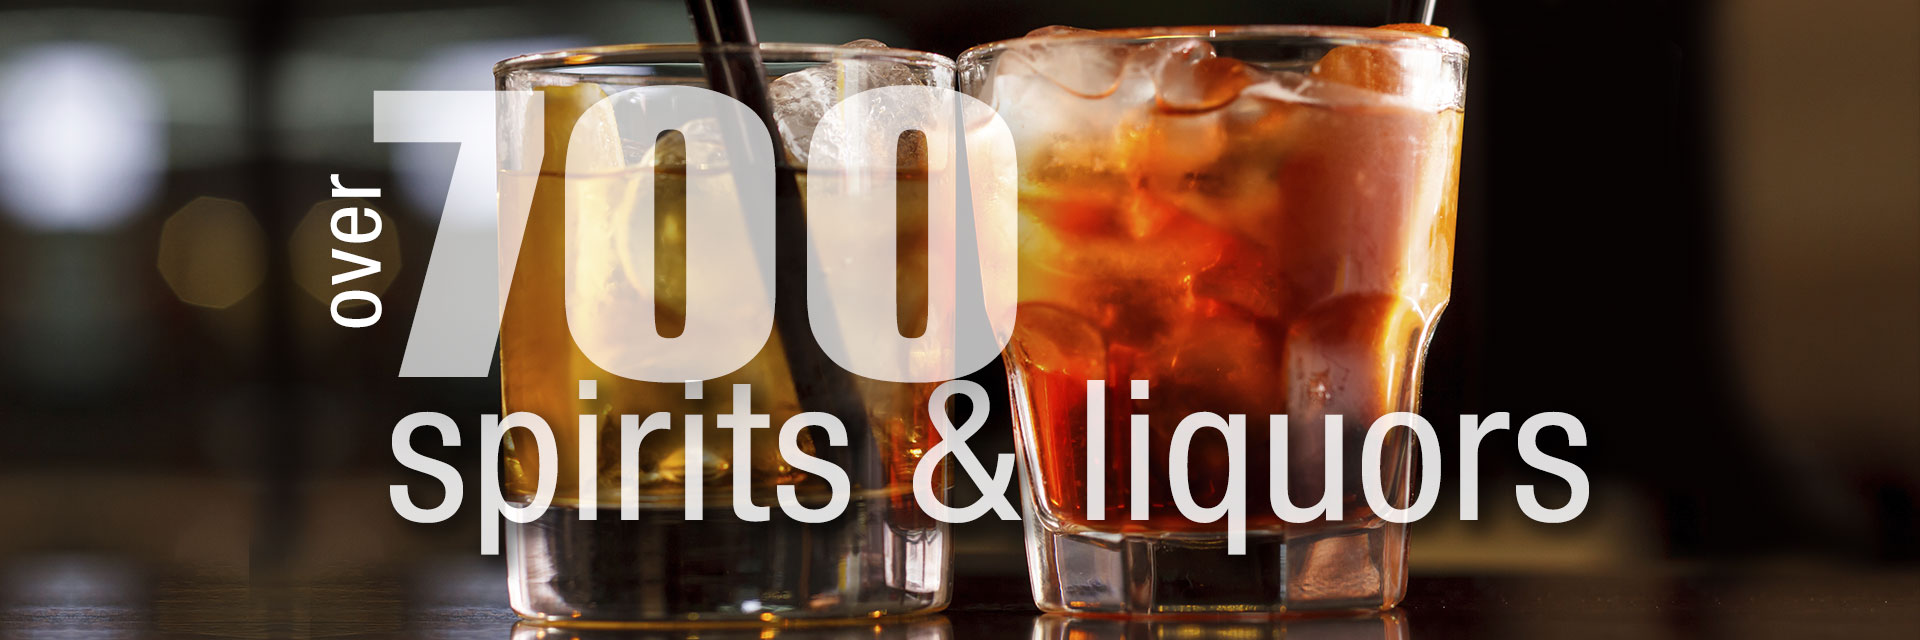 Over 700 Spirits & Liquors